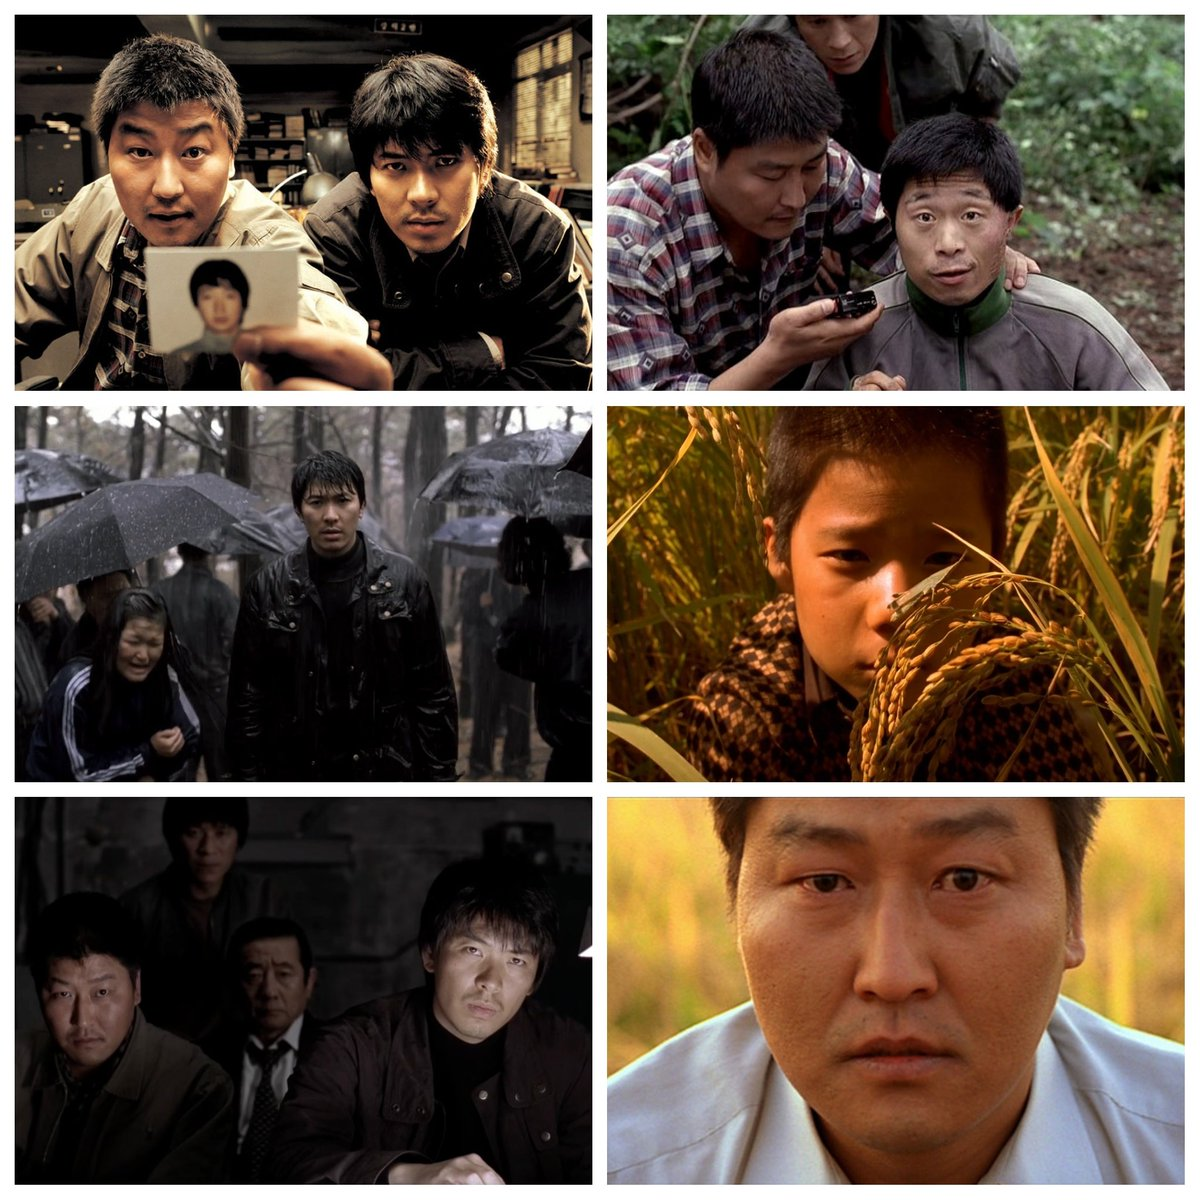 Cinemagrids On Twitter In Memories Of Murder 2003 Actors Look At The Camera Repeatedly Including In The Film S Final Frame Bottom Right Director Bong Joon Ho Did This To Communicate To The Real